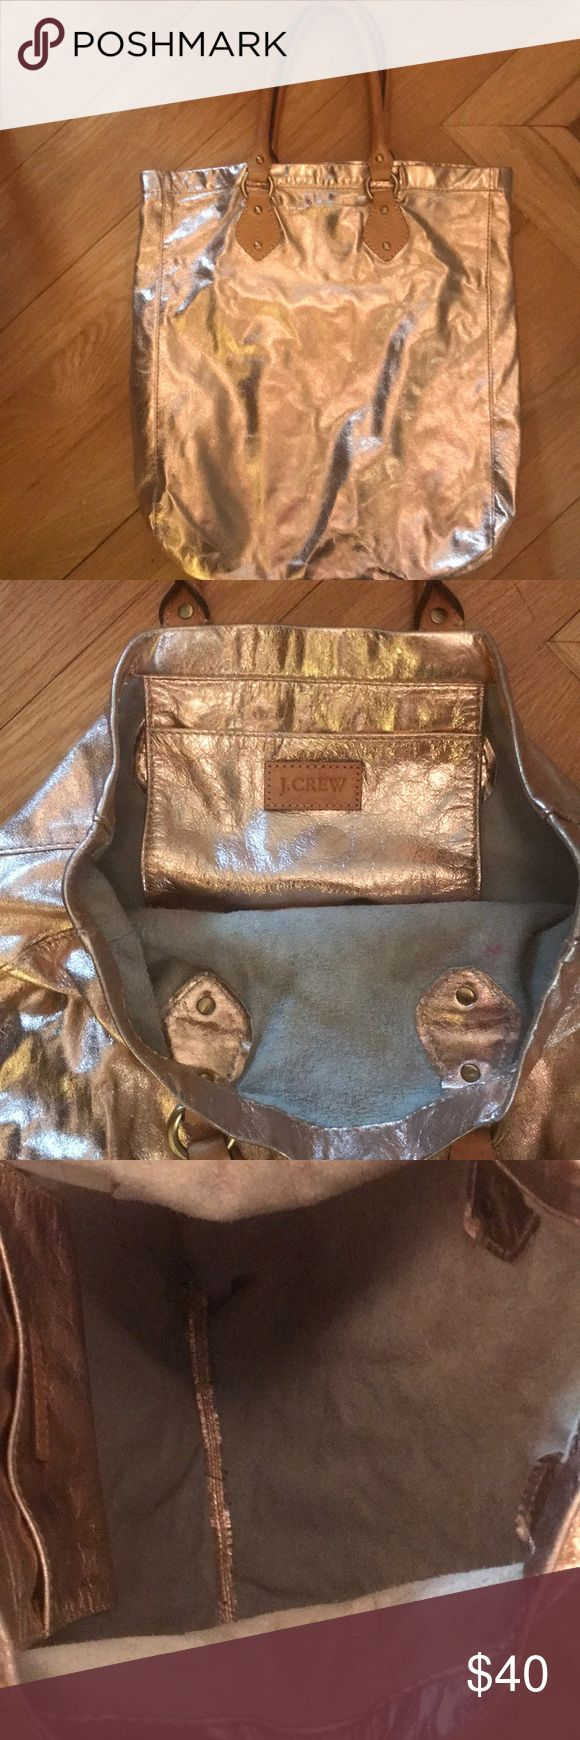 """J.Crew Metallic Rose Gold 100% Leather Bag! J.Crew metallic rose gold leather bag with an inside pocket and tan leather handles. 16"""" height, excellent condition! J. Crew Bags Totes"""